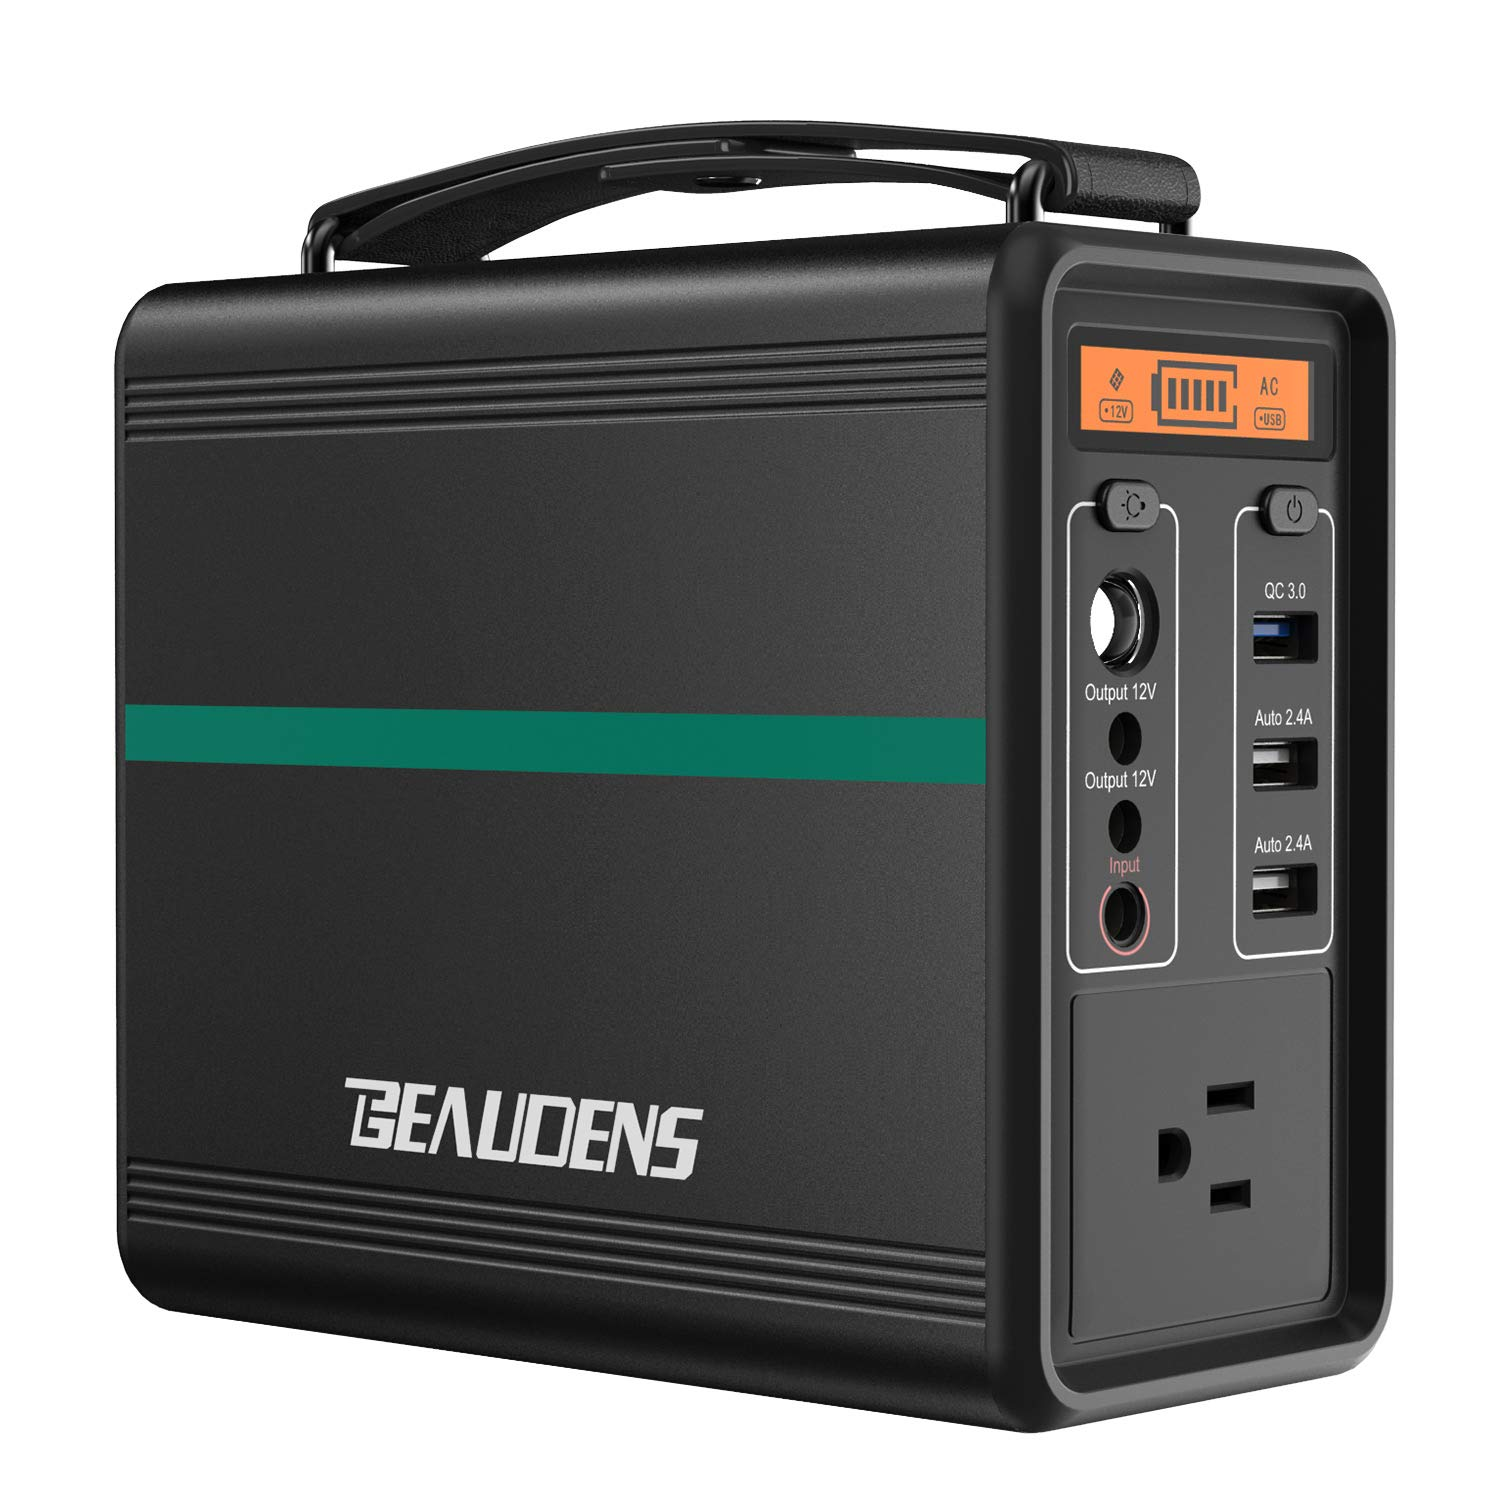 BEAUDENS 166Wh Portable Power Station, Lithium Iron Phosphate Battery, 2000 Cycles, 10 Years Battery Life, with Multiple Ports, Perfect for Tablet, Laptop, Appliances Use by BEAUDENS (Image #1)